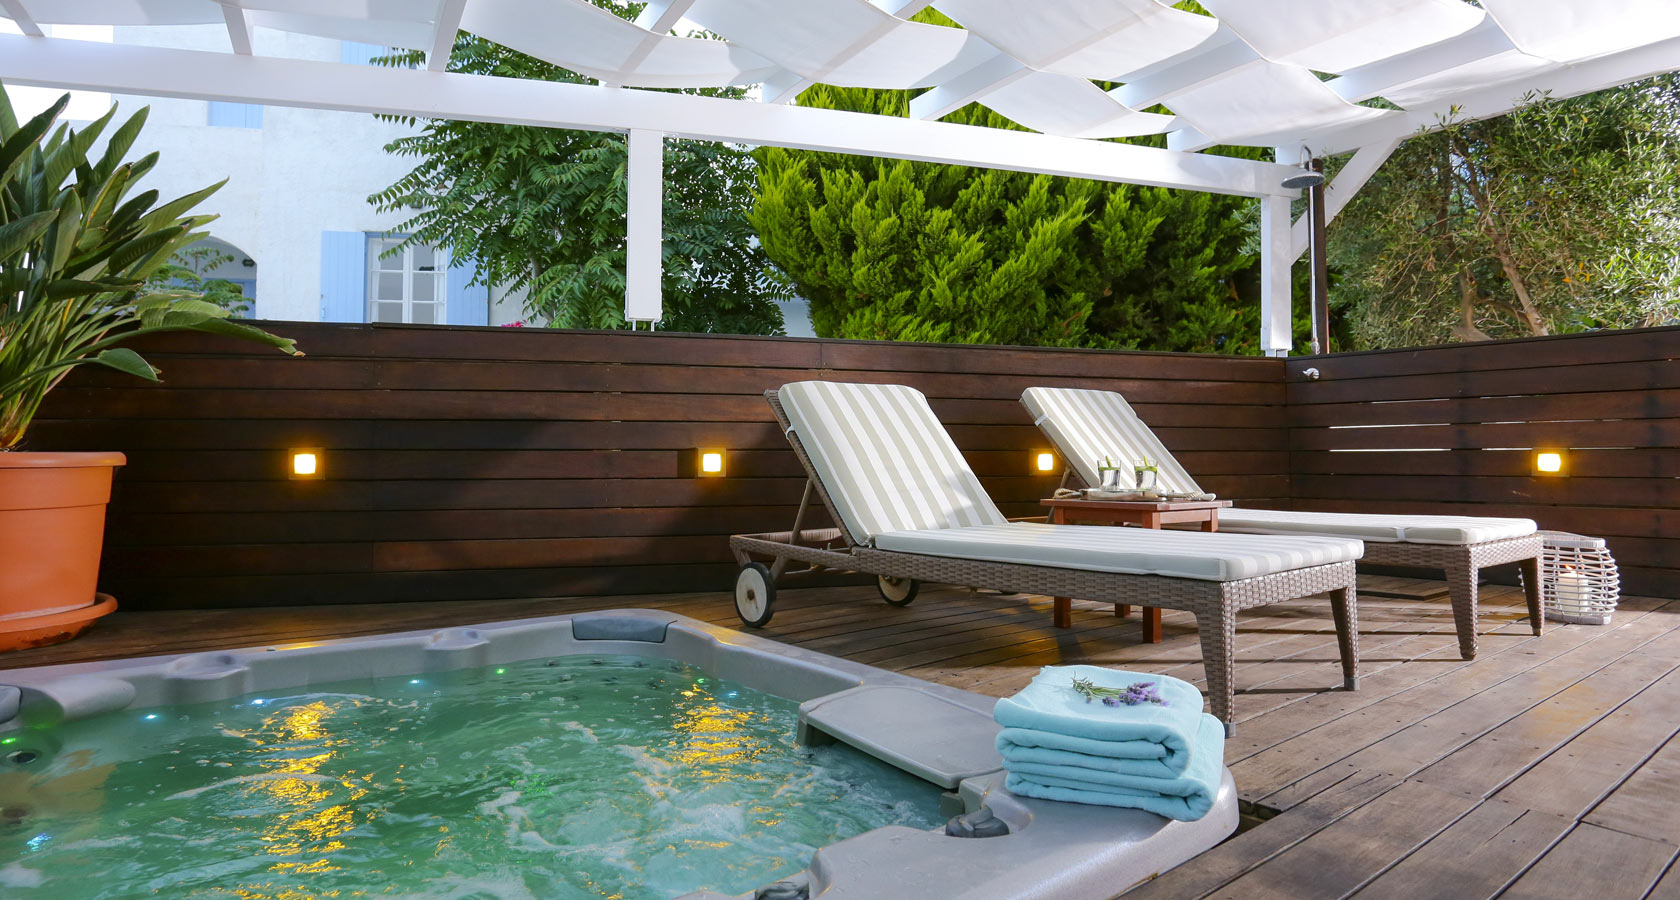 Outdoor Jacuzzi of Stelia Mare Hotel in Paros